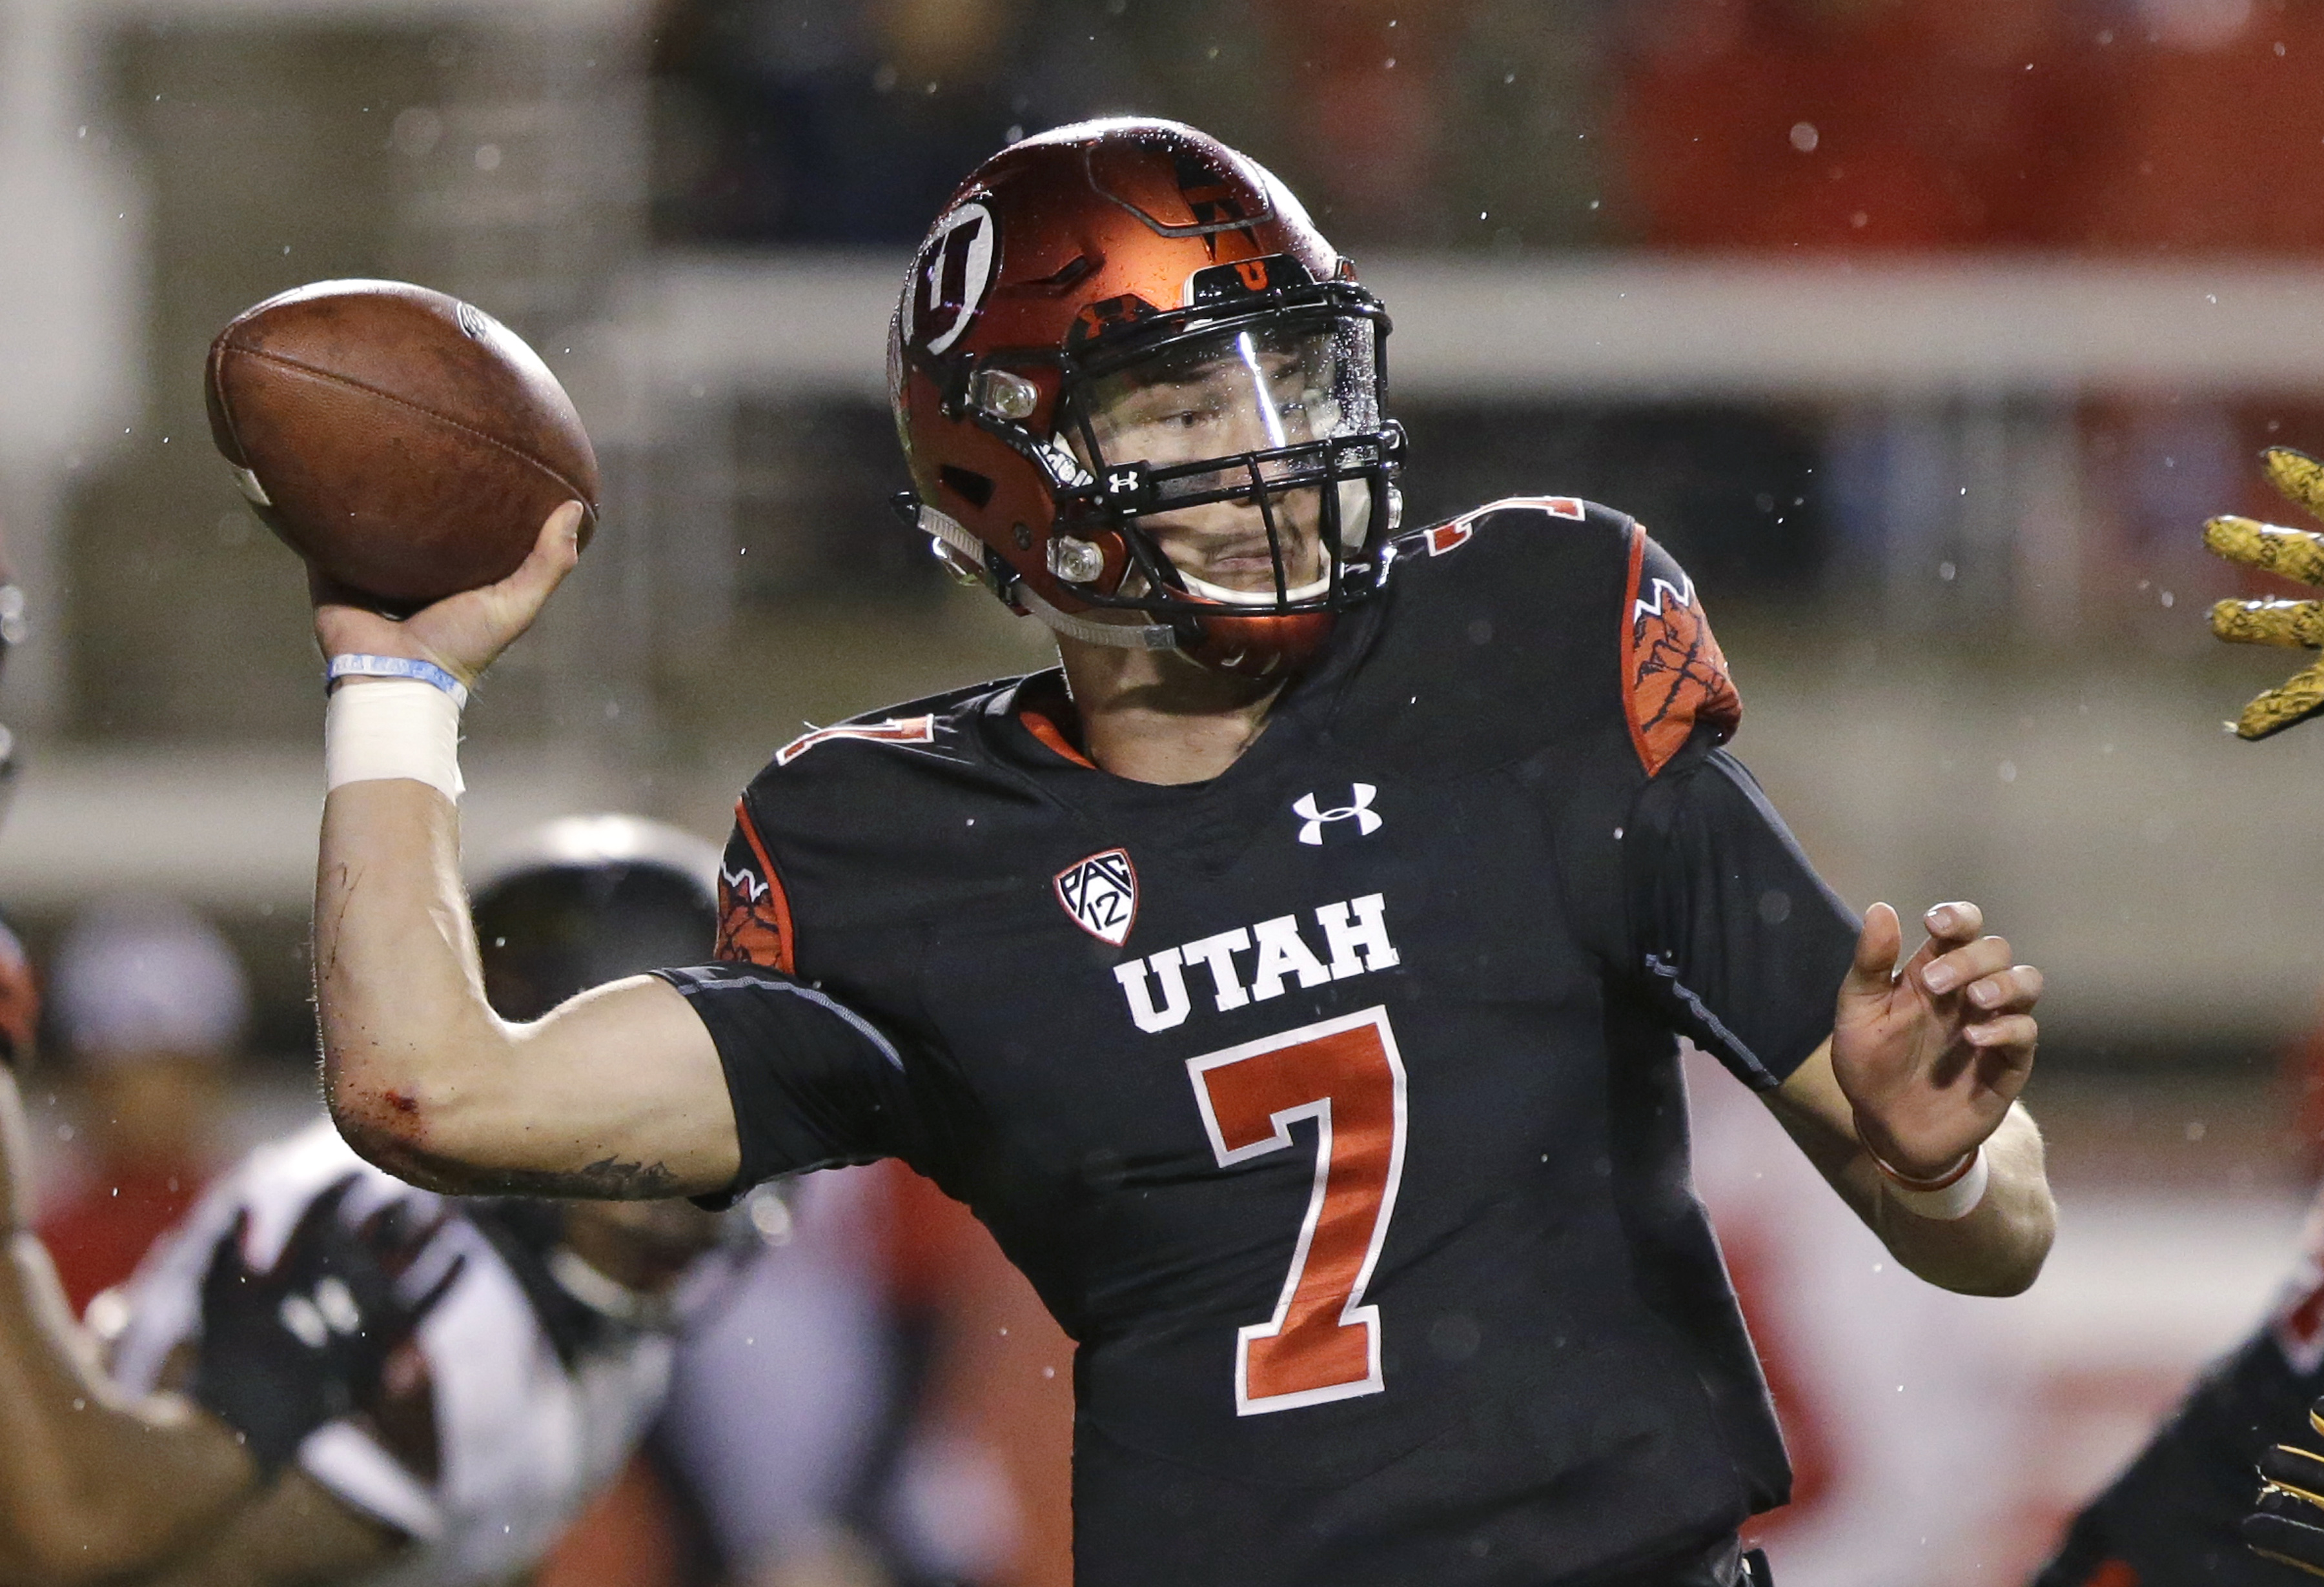 Utah quarterback Travis Wilson (7) passes the ball in the first half during an NCAA college football game against Arizona State Saturday, Oct. 17, 2015, in Salt Lake City. (AP Photo/Rick Bowmer)